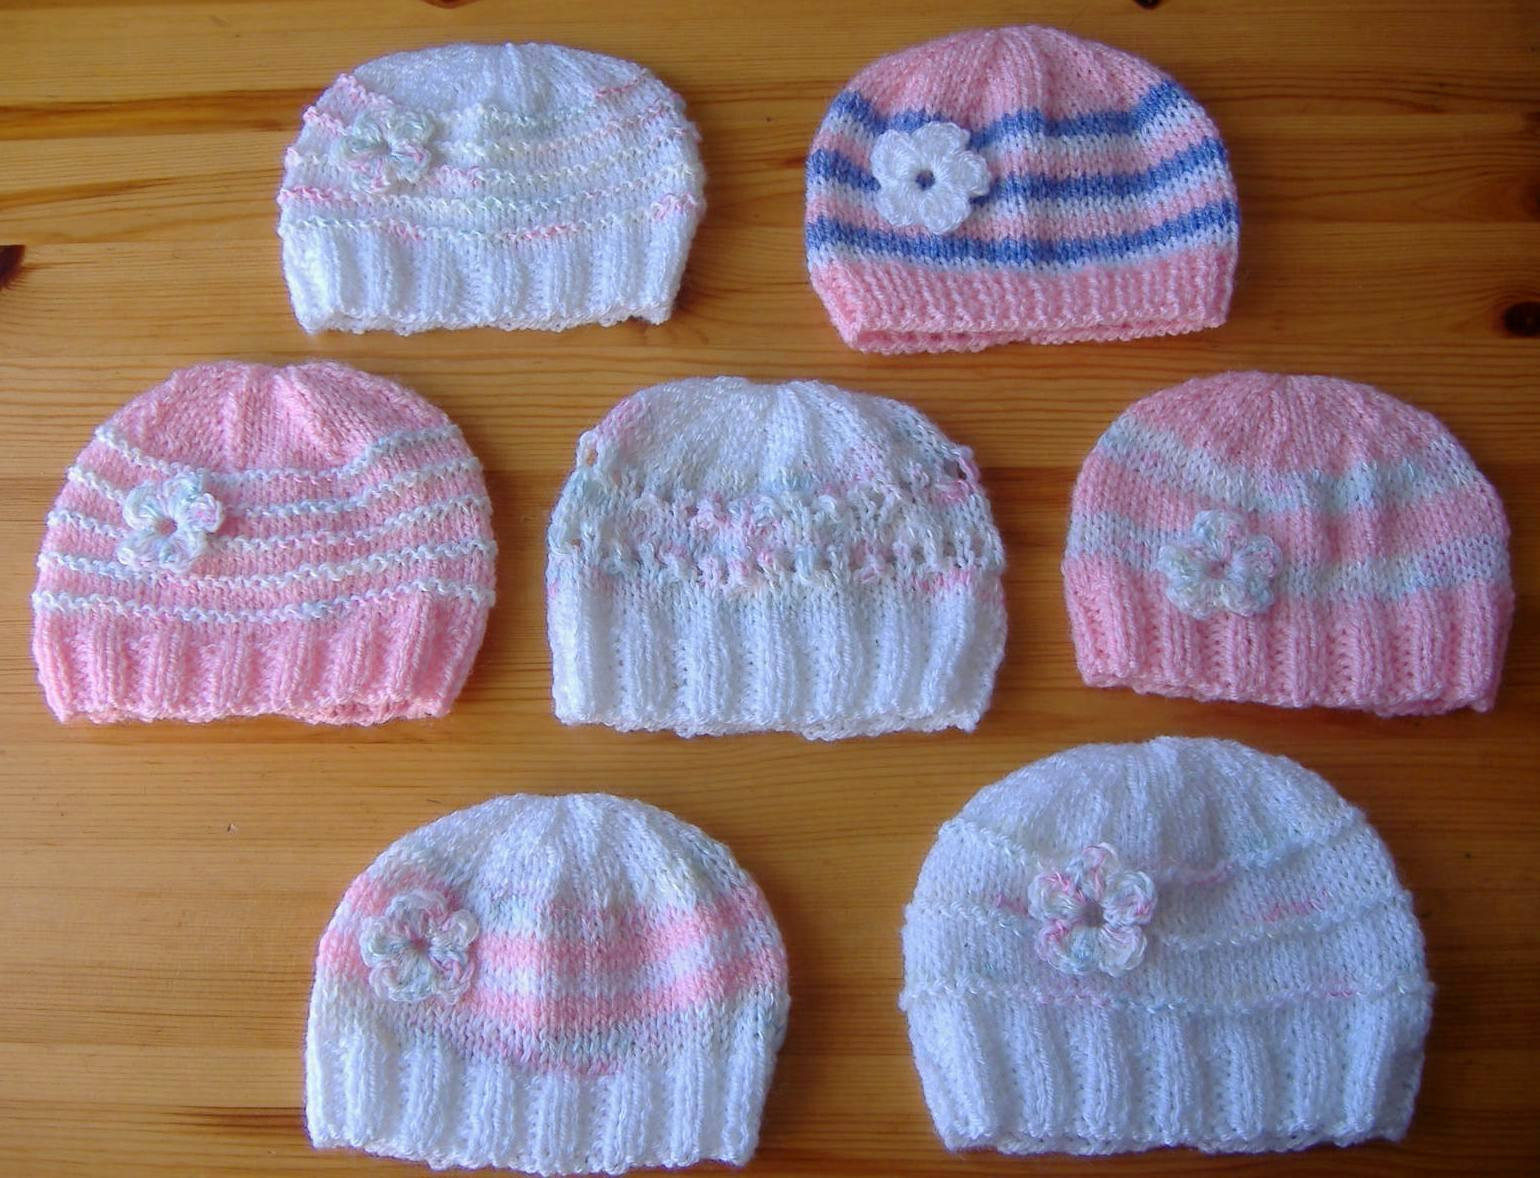 Best Of Marianna S Lazy Daisy Days Knitted Baby Girl Hats Knitting Baby Cap Of Lovely 48 Photos Knitting Baby Cap